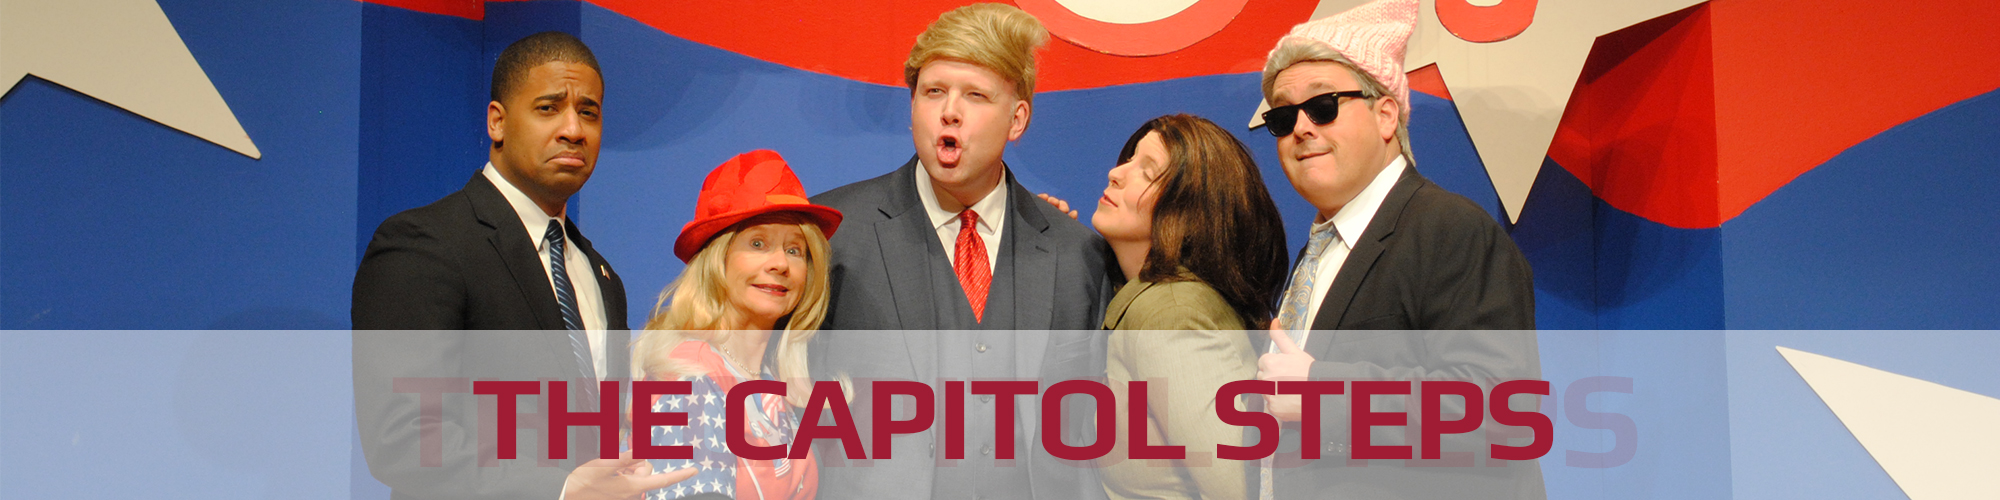 LARL-show-page-header-Capitol-Steps